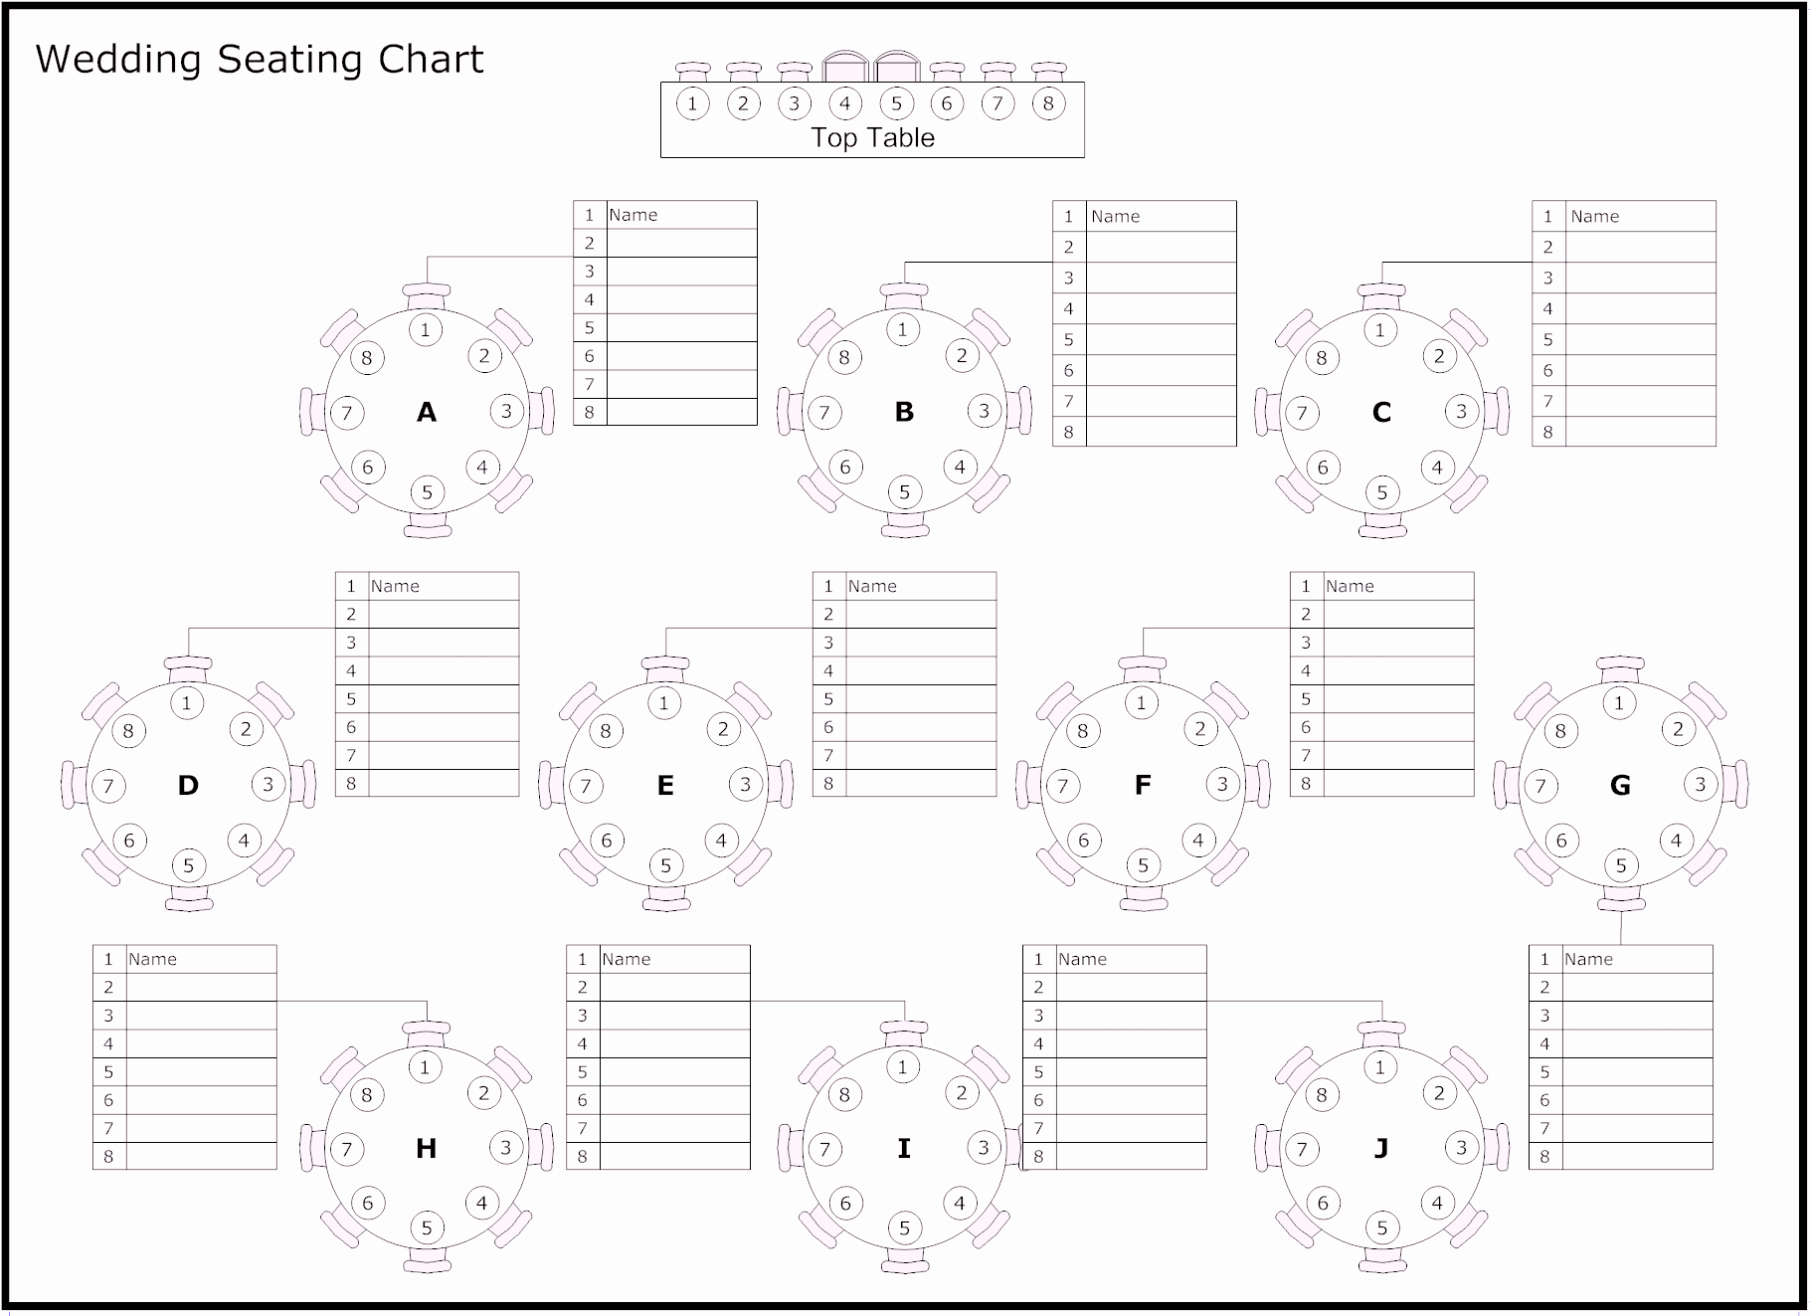 Seating Chart Wedding Template Free New Free Table Of Reception & Wedding Seating Chart Template